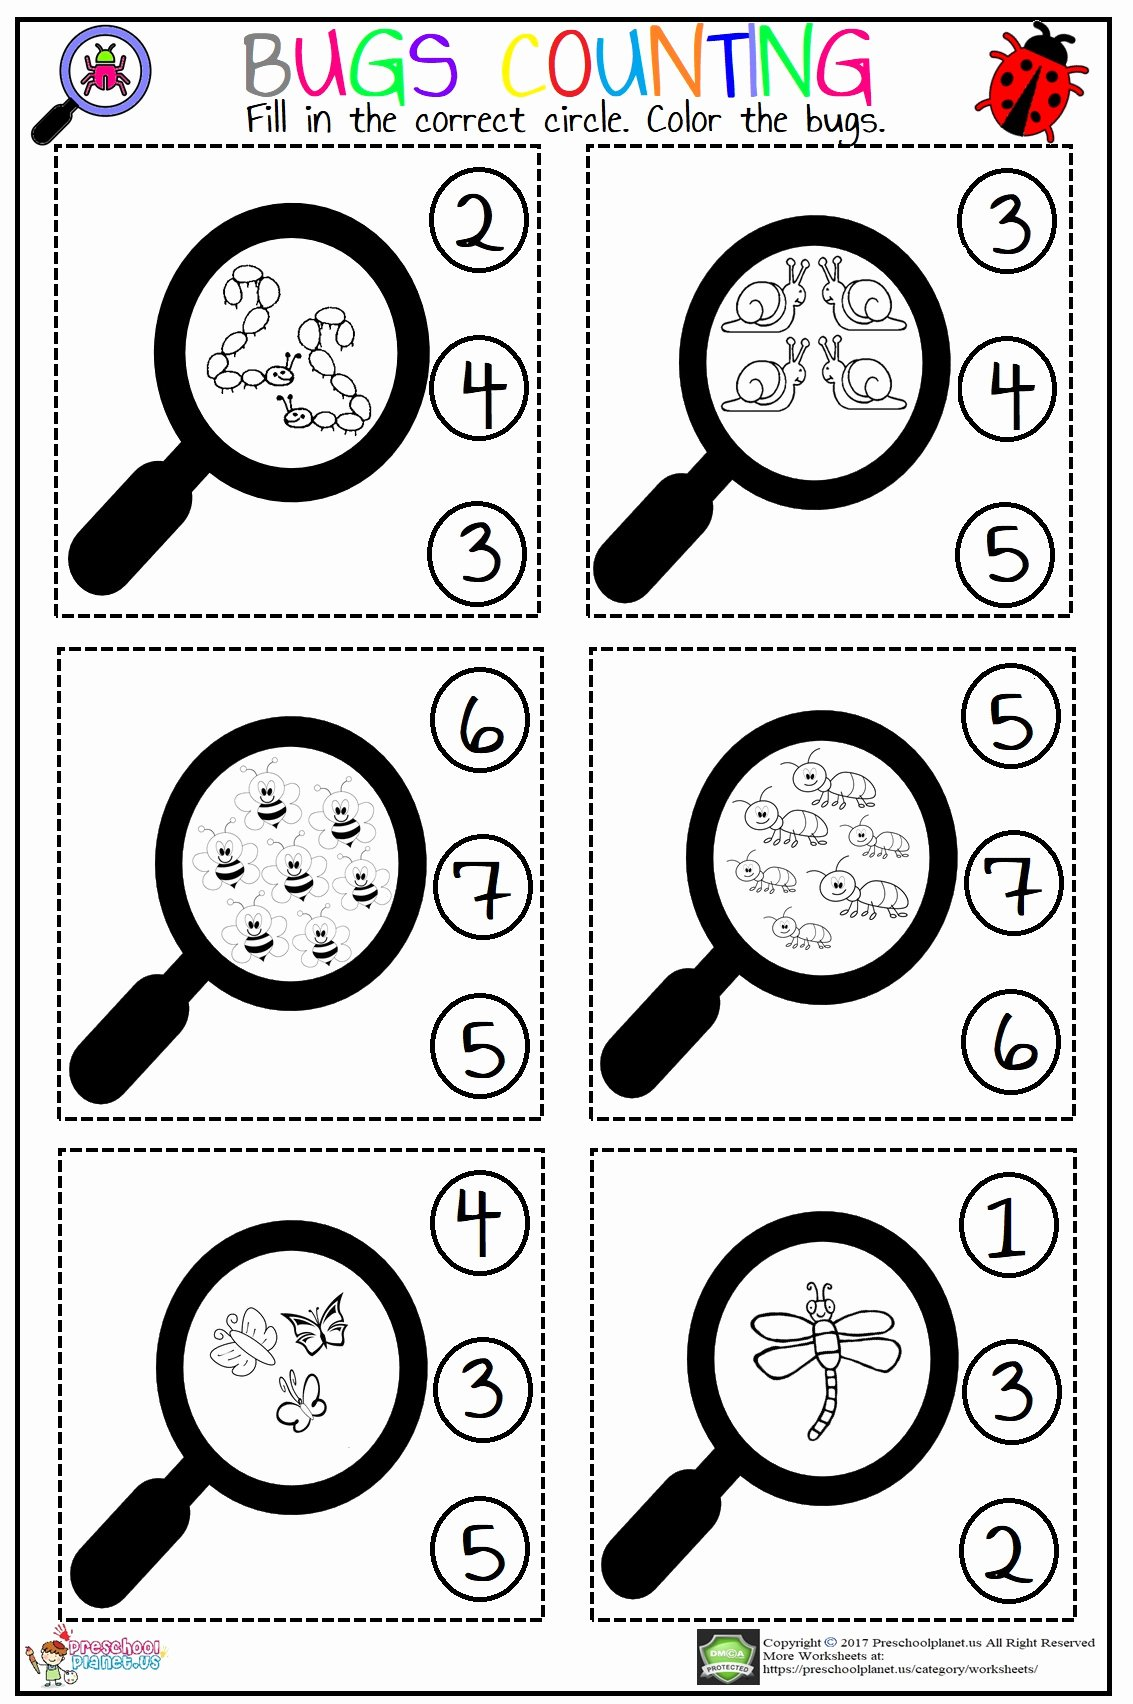 Counting Bugs Worksheets for Preschoolers Fresh Bugs Counting Worksheet – Preschoolplanet